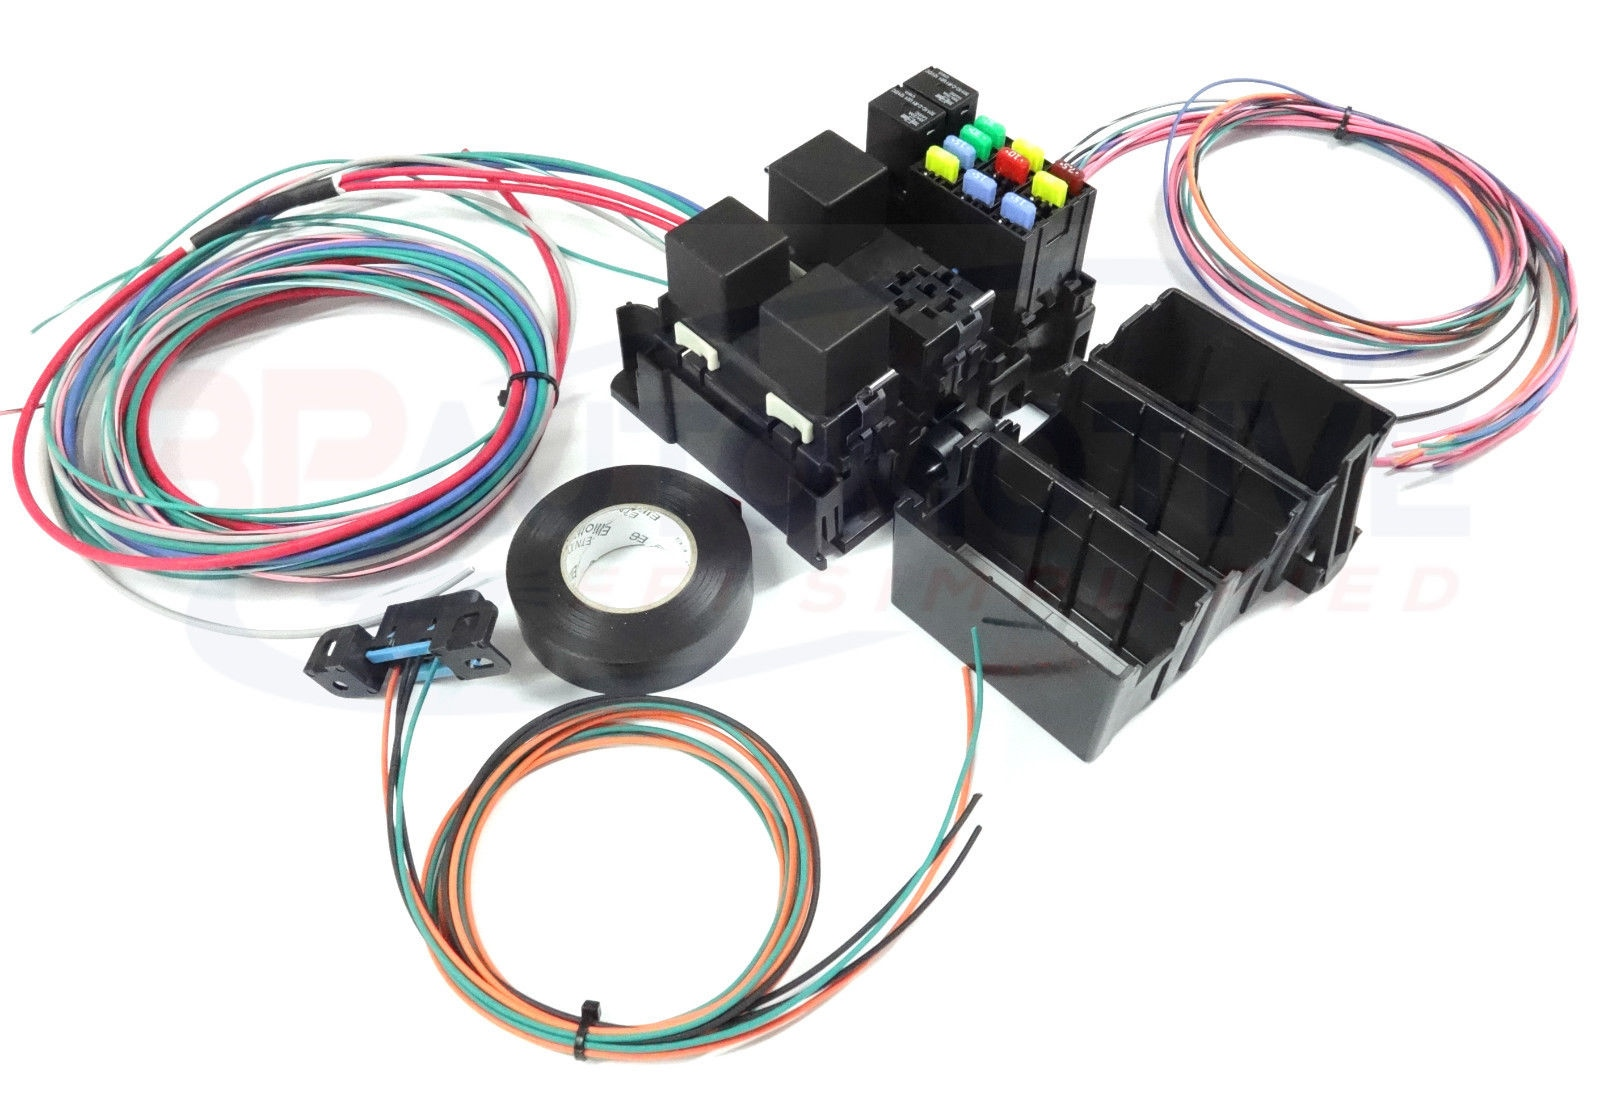 ls swap diy harness rework fuse block kit for ls. Black Bedroom Furniture Sets. Home Design Ideas